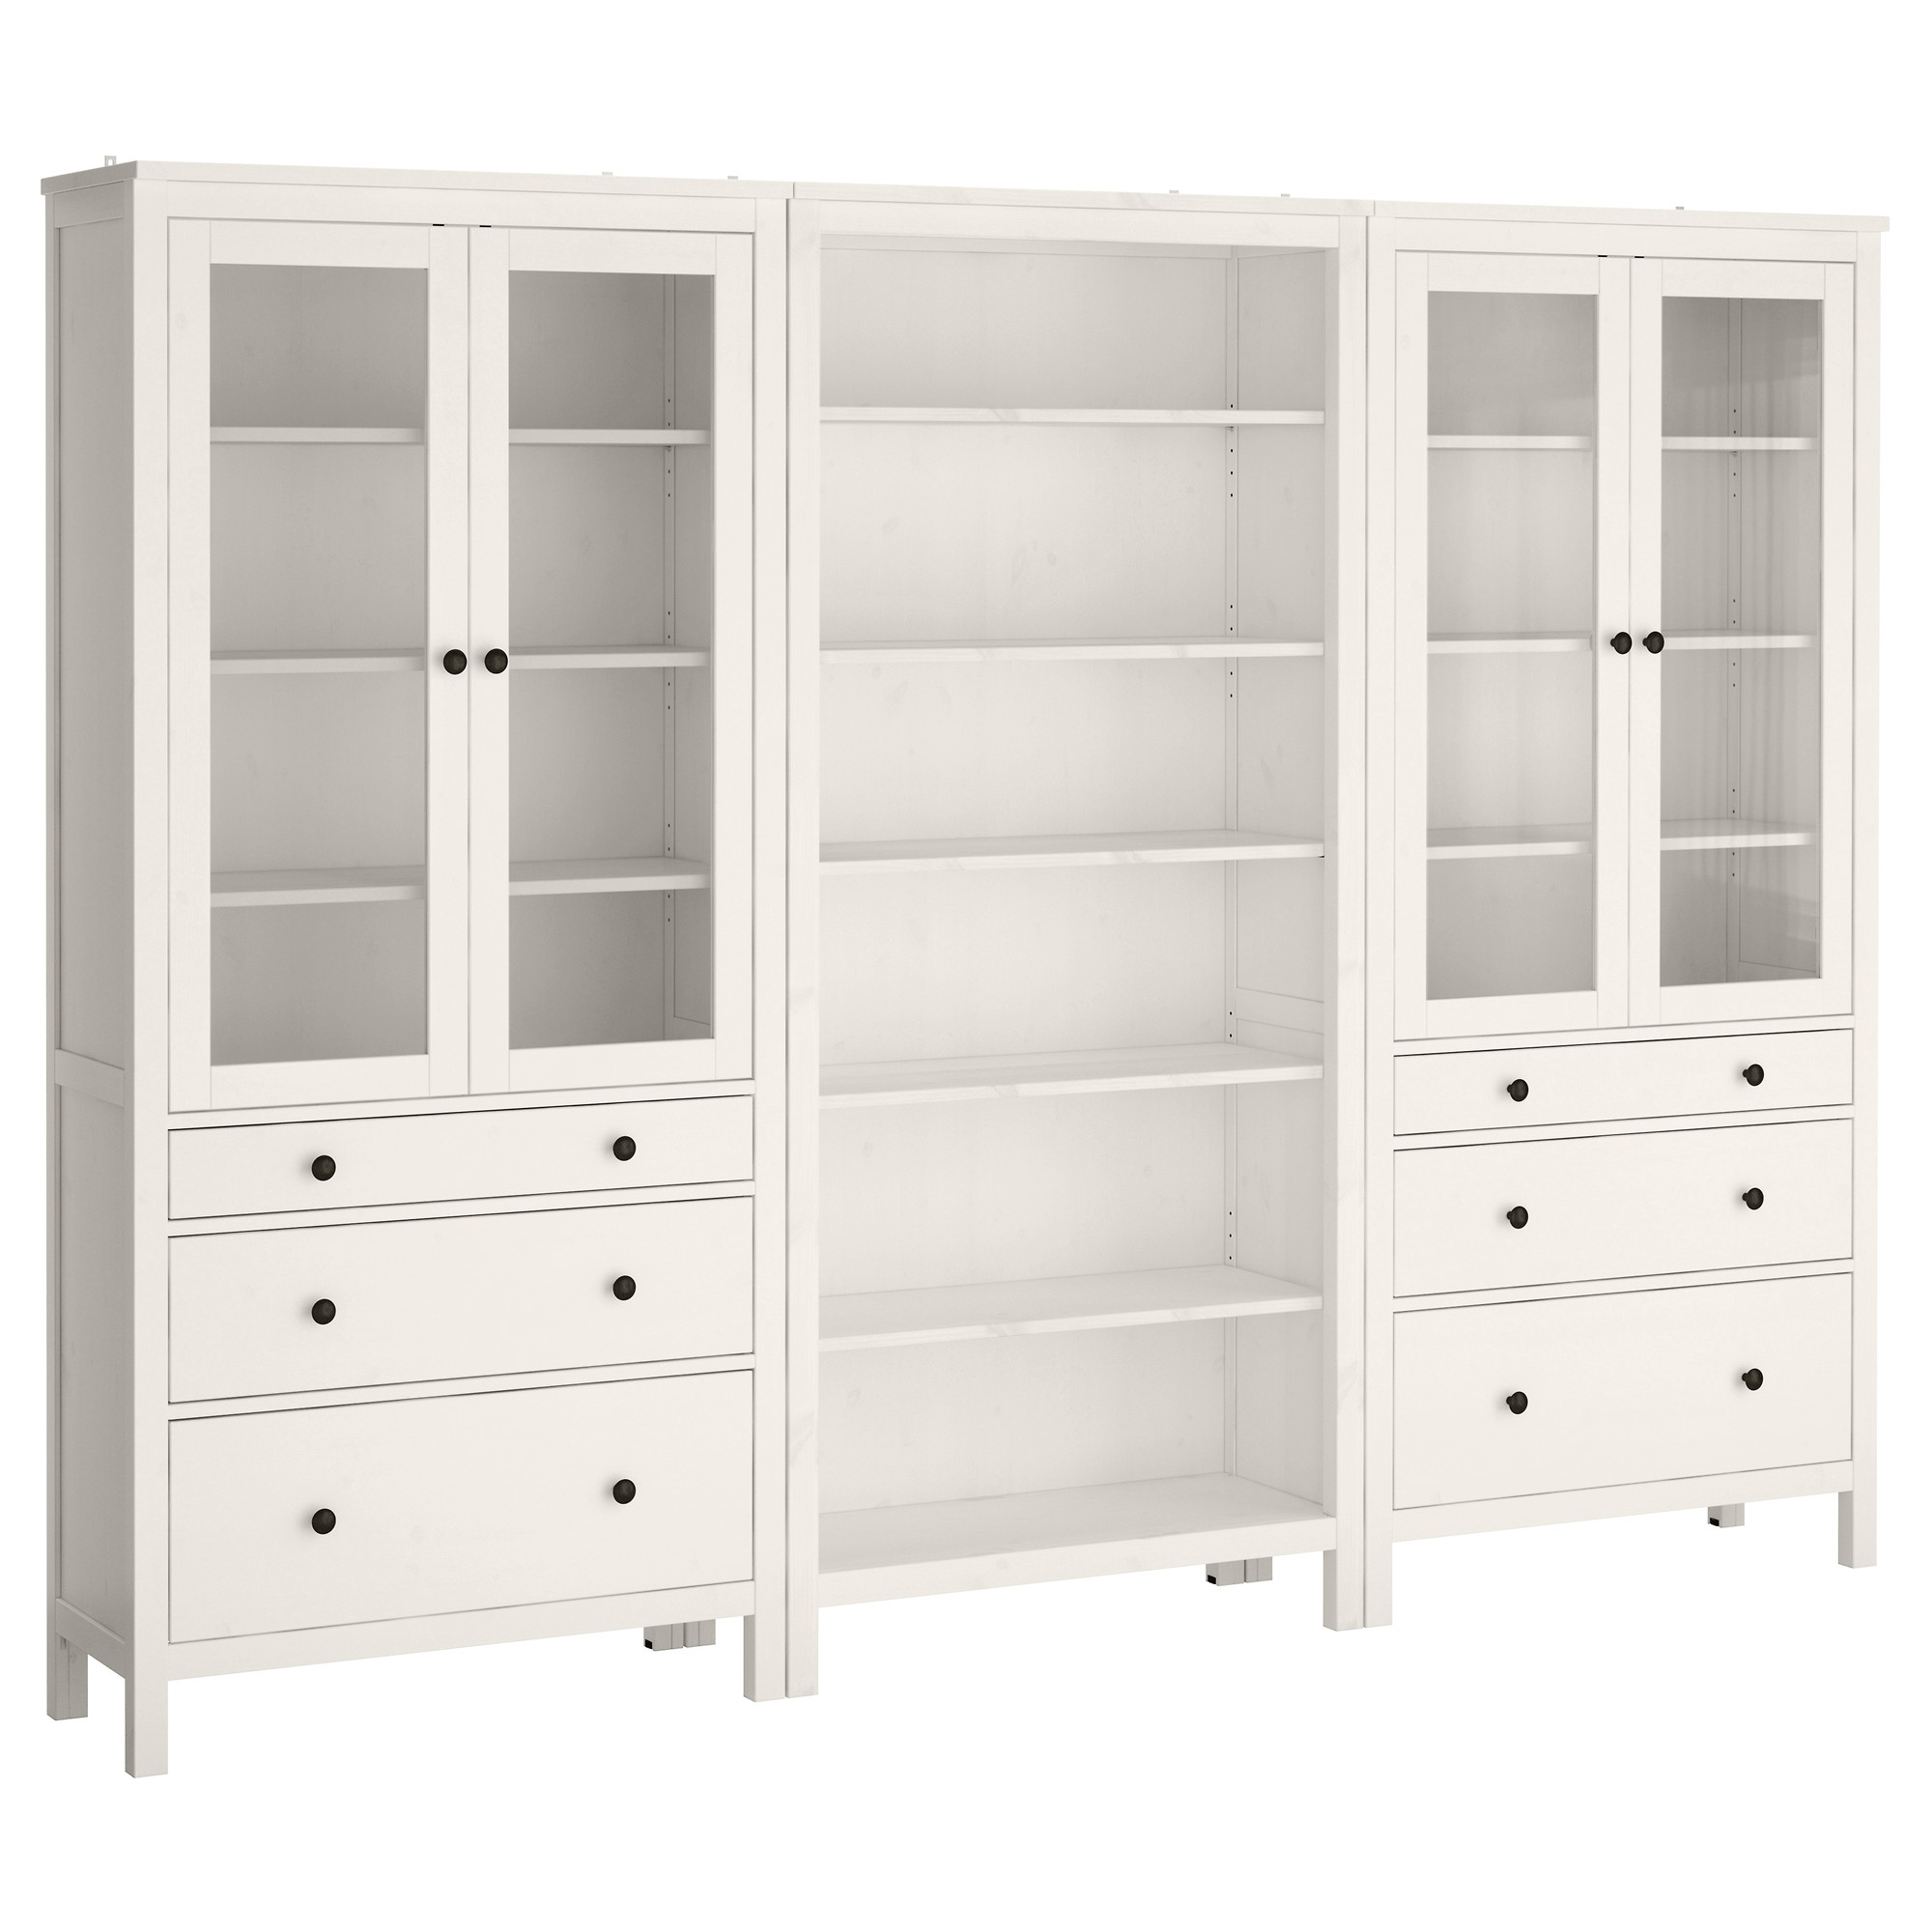 Ikea Regarding Ikea Corner Bookcases (Gallery 12 of 15)